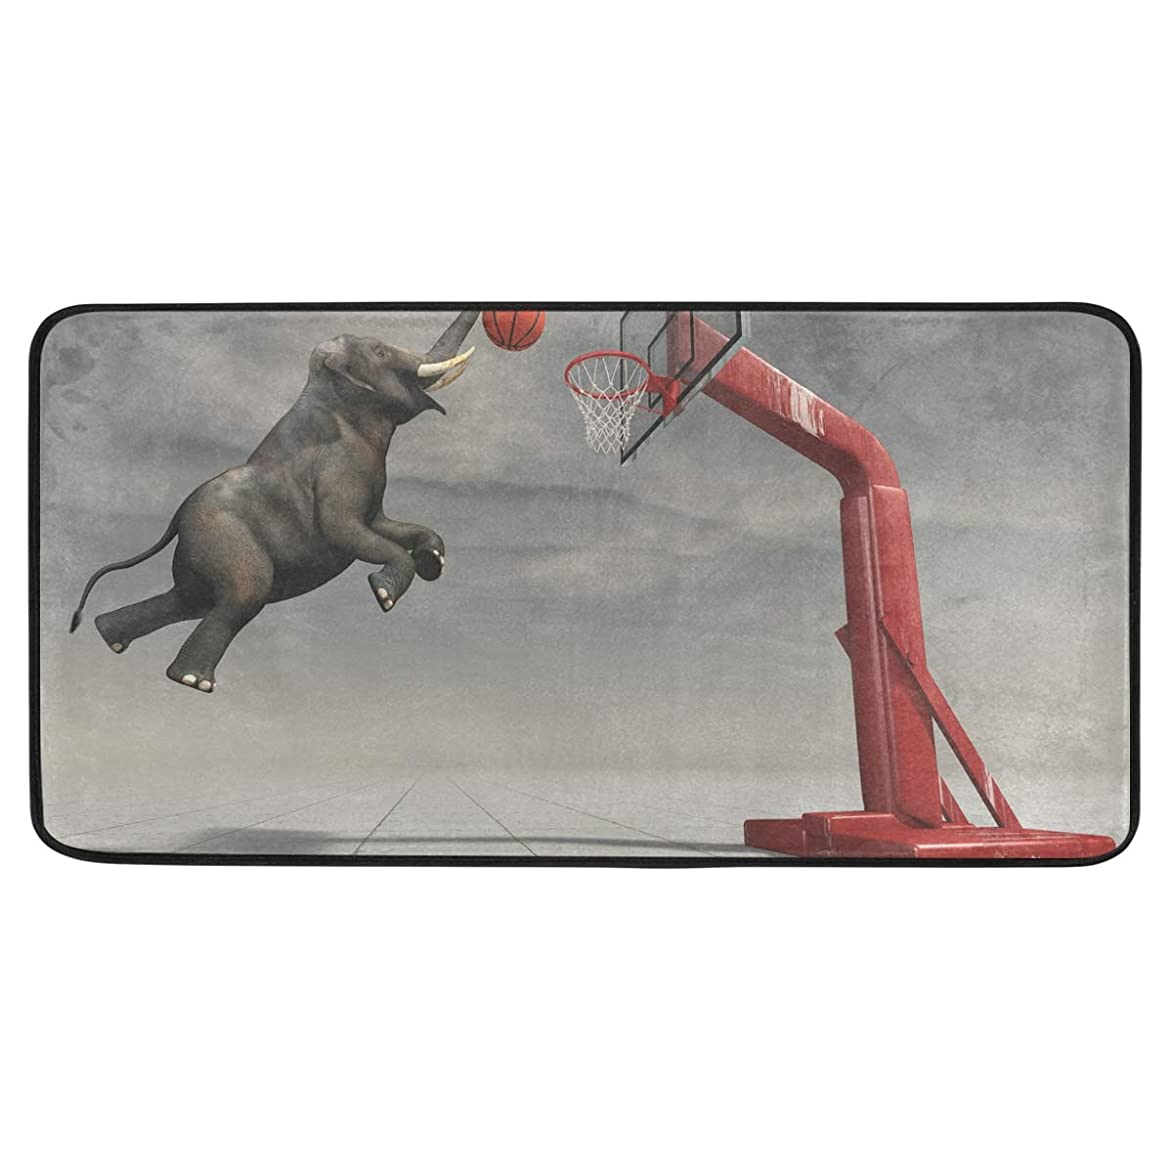 ALAZA Basketball Standing Mat Kitchen Rug Mat, Anti Fatigue Comfort Flooring, Commercial Grade Pads, Waterproof, Ergonomic Floor Pad, Rugs for Office Stand Up Desk, 39x20in oti107604909754